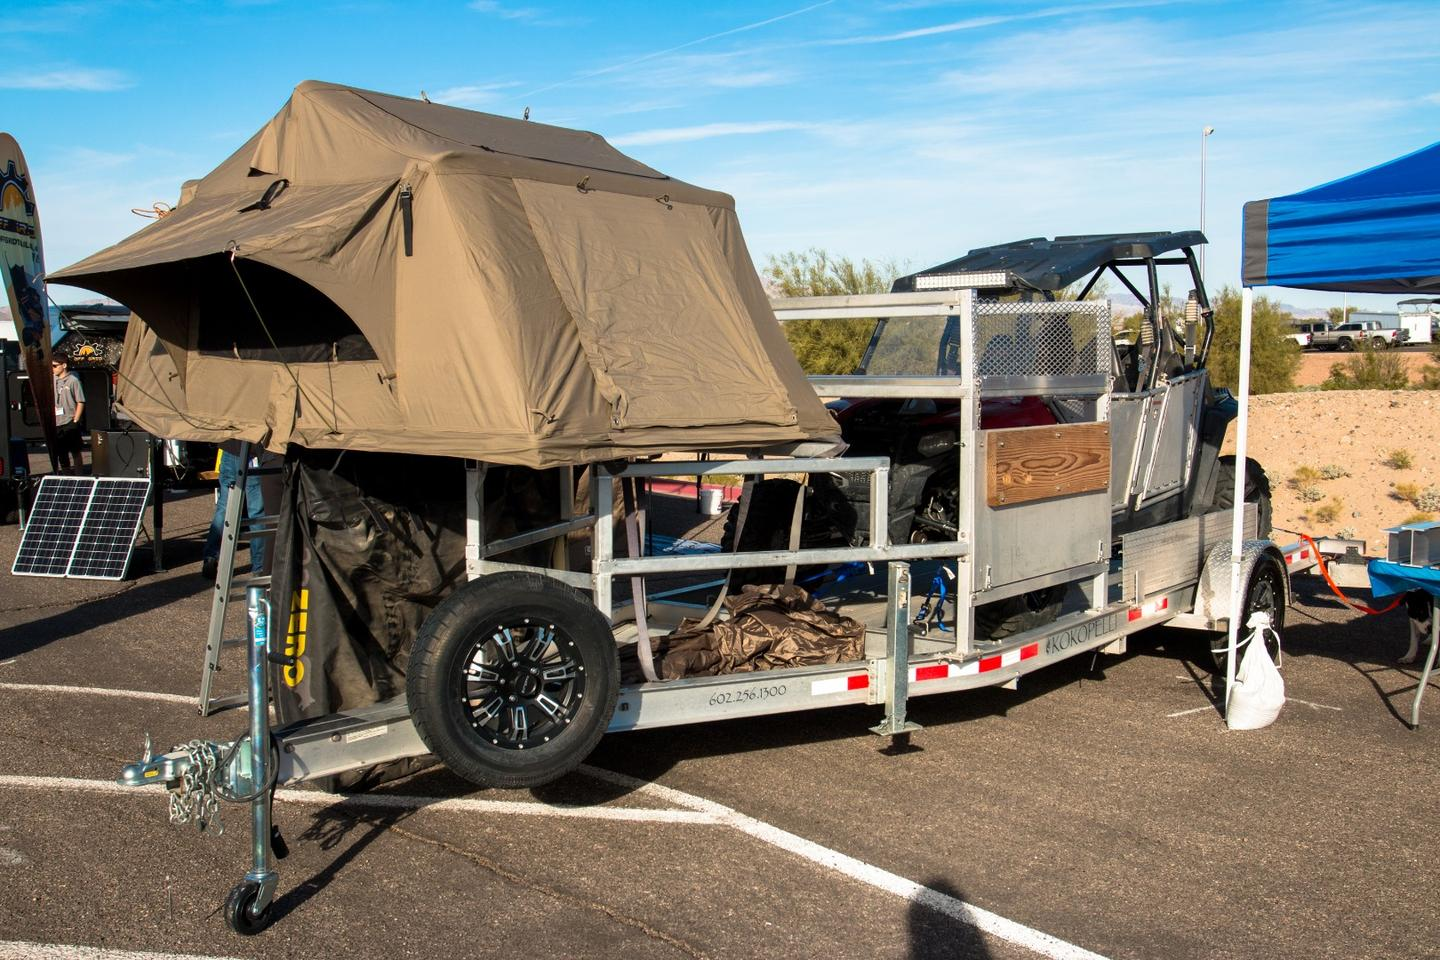 Phoenix-based Kokopelli Trailers specializes in boat and cargo trailers, and here it shows a UTV hauler made into a camper via roof-top tent